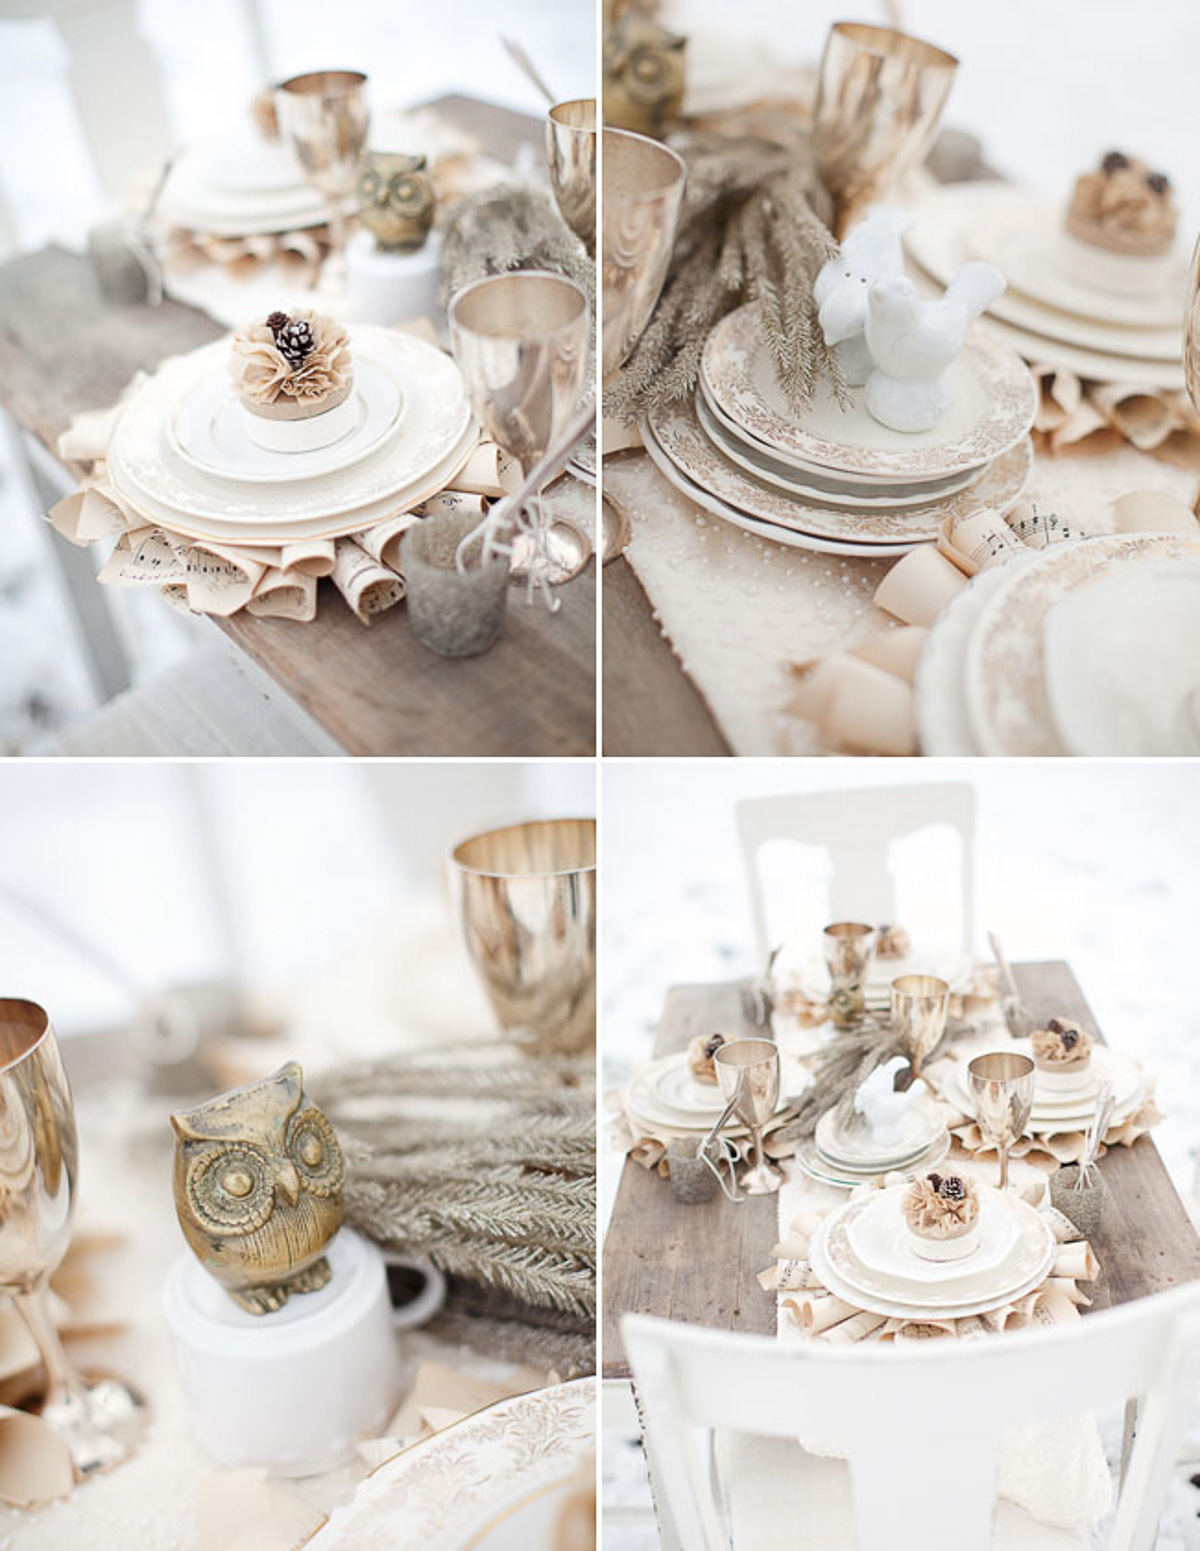 Holiday Table Setting Ideas_Creative Ways To Decorate The Table-20